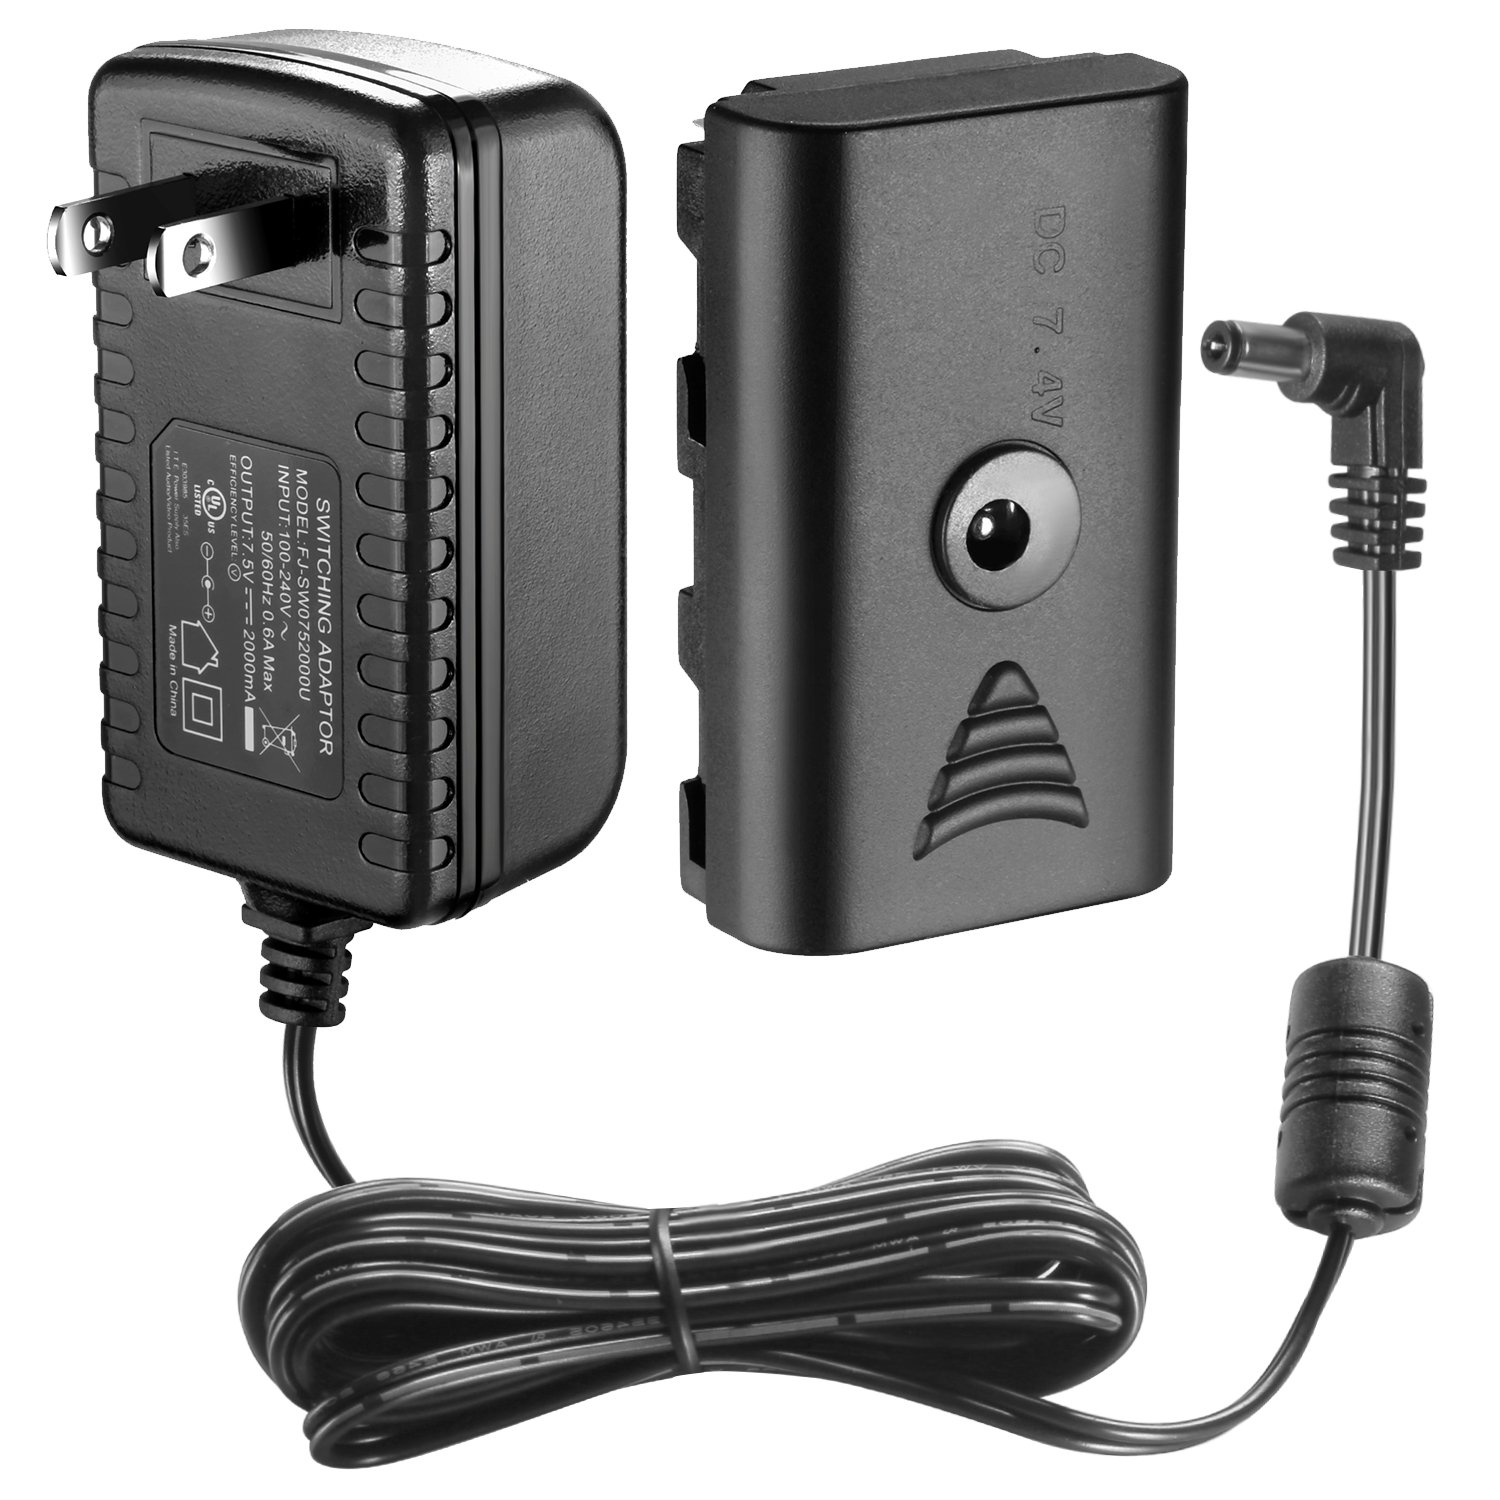 Neewer CN-AC2 DC 7.5V 2A Switching Power Supply Adapter for Video Light CN-160 CN-126 10077719